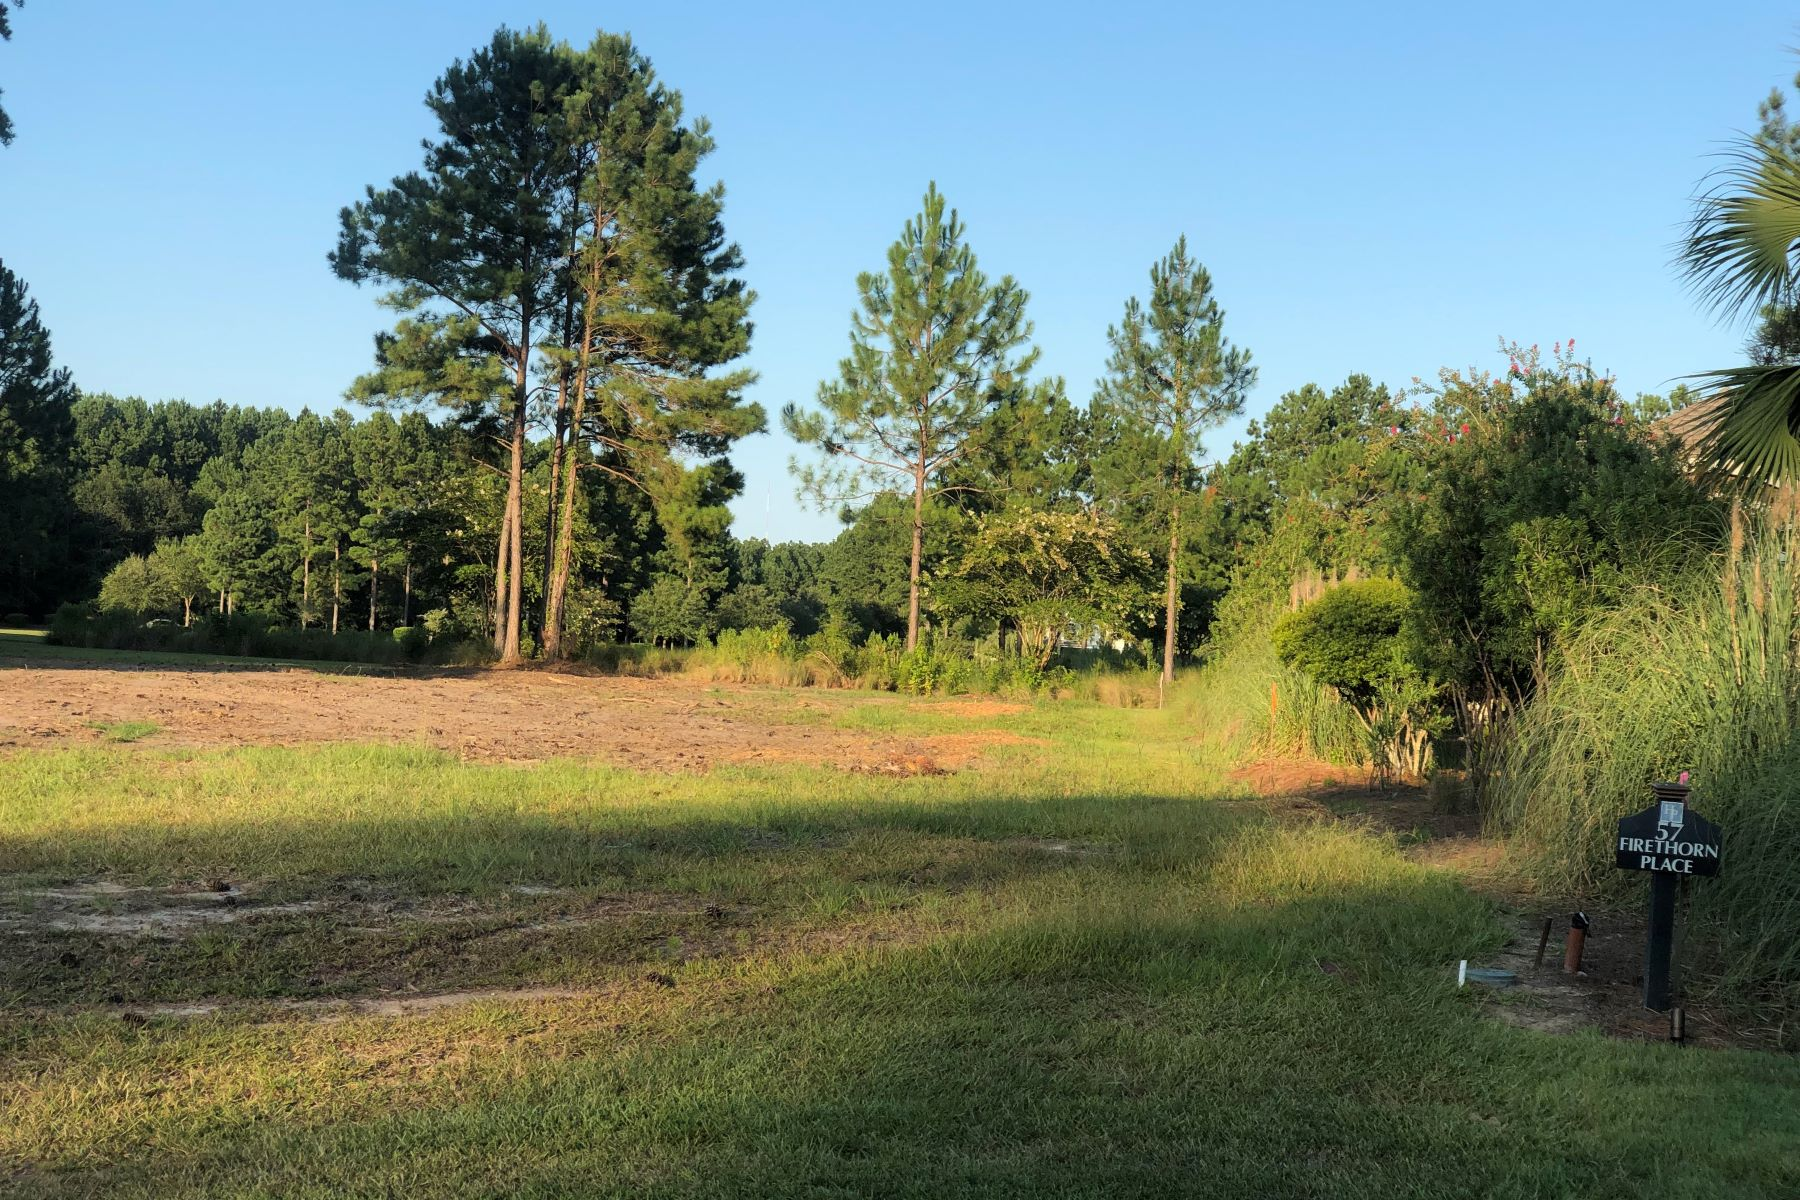 Land for Sale at 31 Firethorn Place Hardeeville, South Carolina 29927 United States